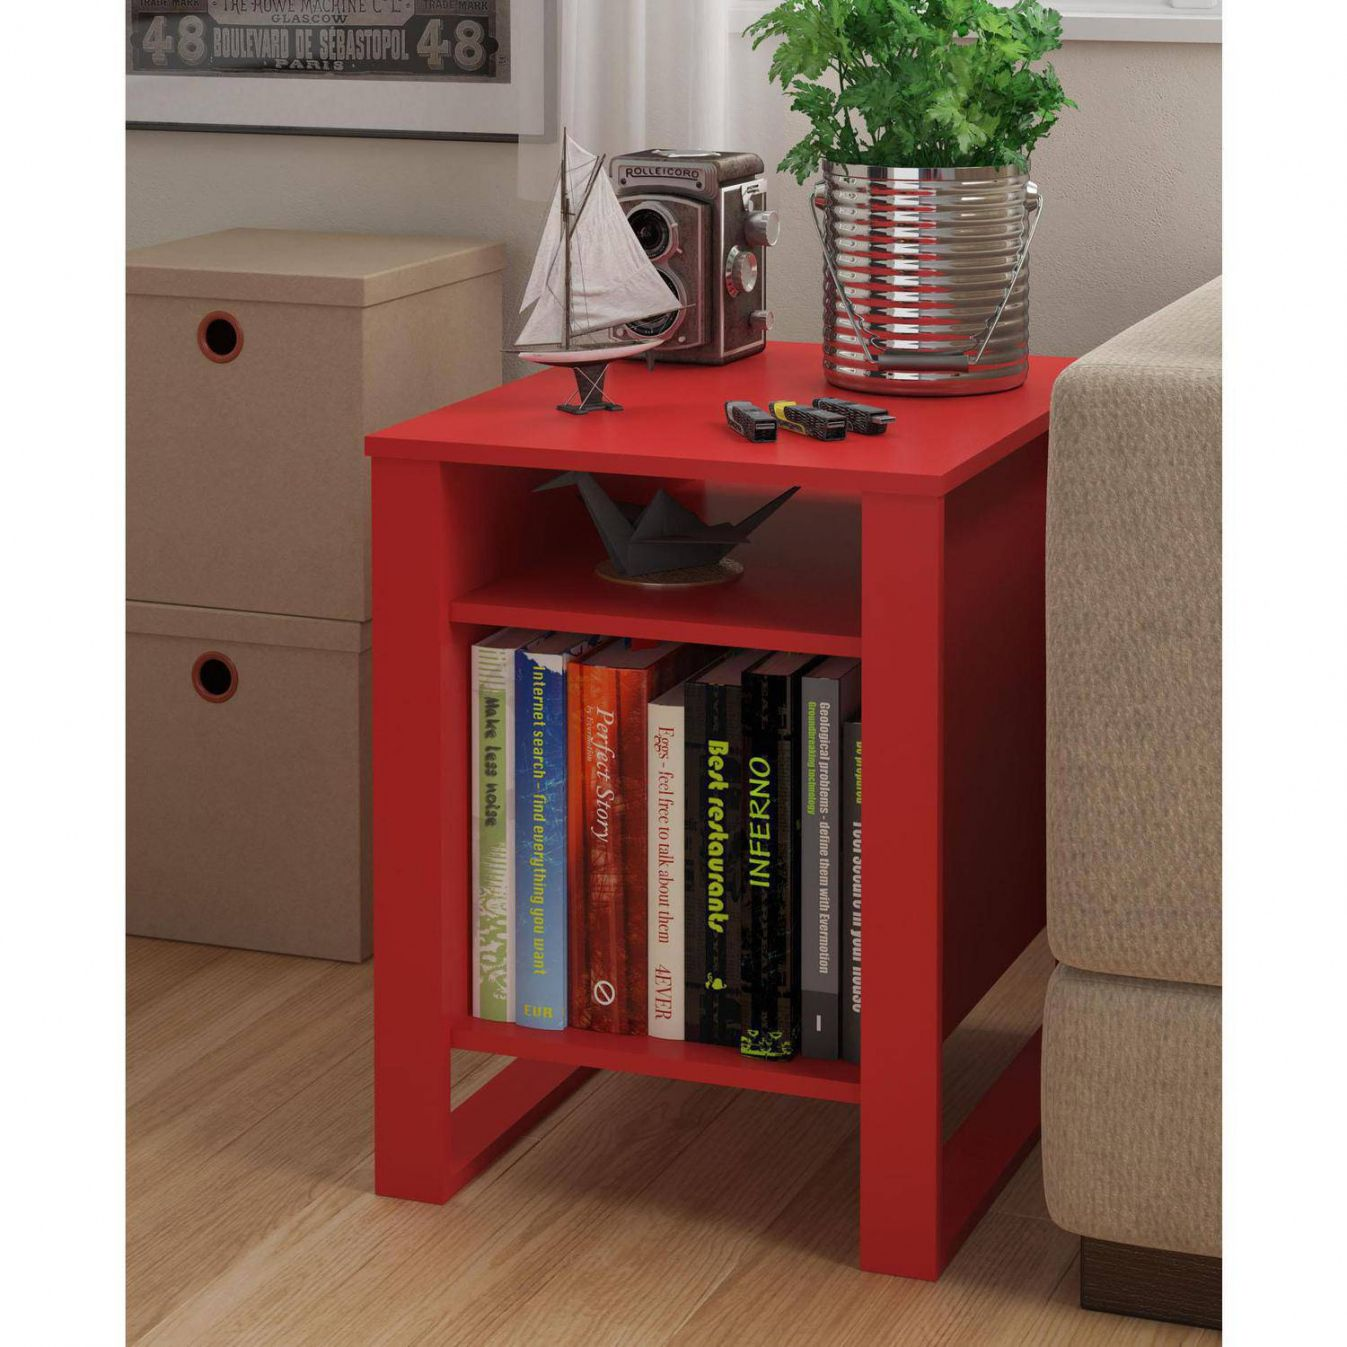 likable red accent tables episode and episodes ott gabrielle cudi threshold full furniture target bench kijiji storage part outdo jada table talk watch union cabinet mosaic size